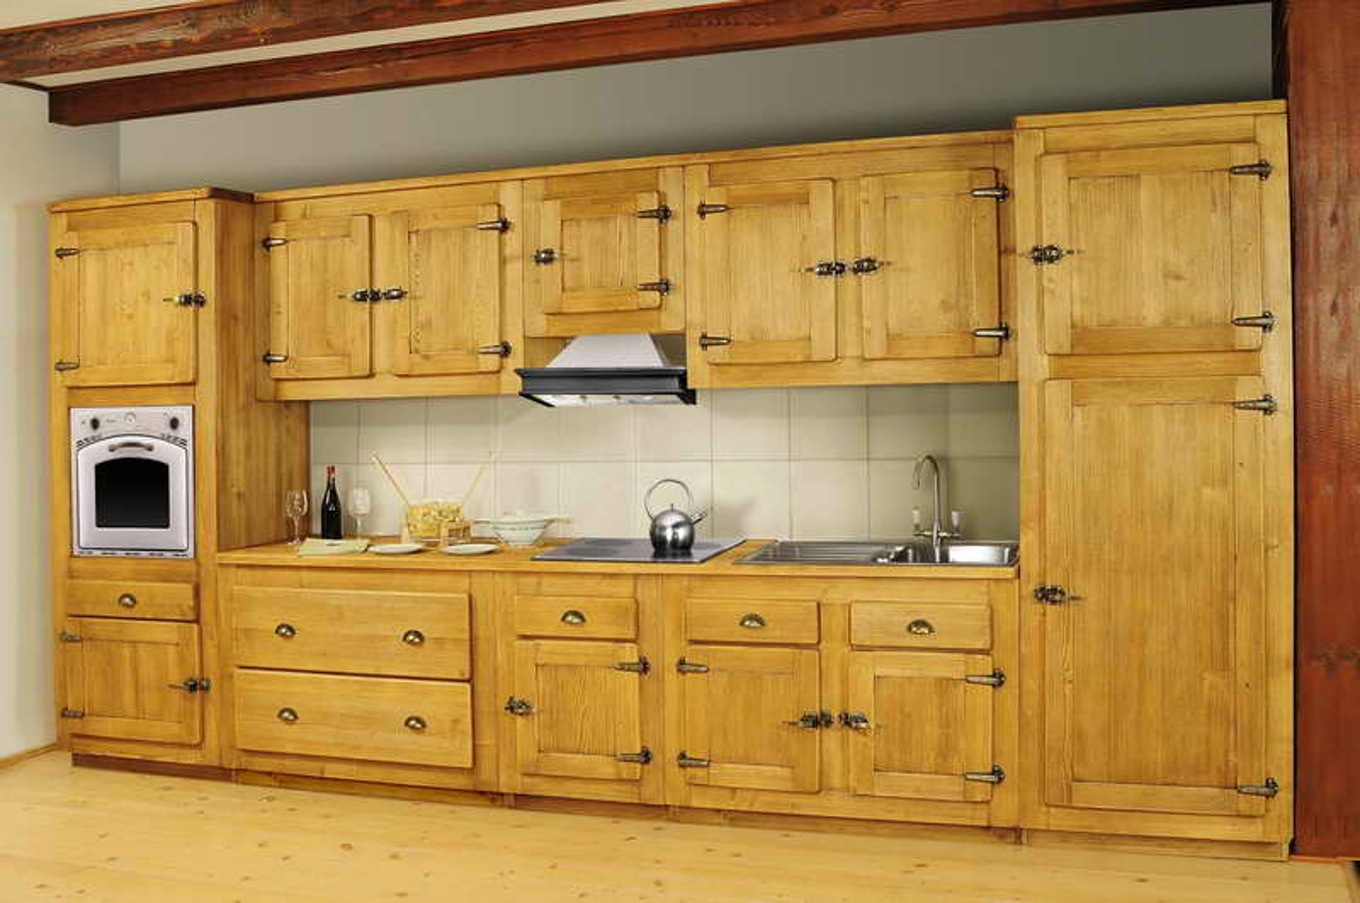 meuble de cuisine en bois massif id es de d coration int rieure french decor. Black Bedroom Furniture Sets. Home Design Ideas